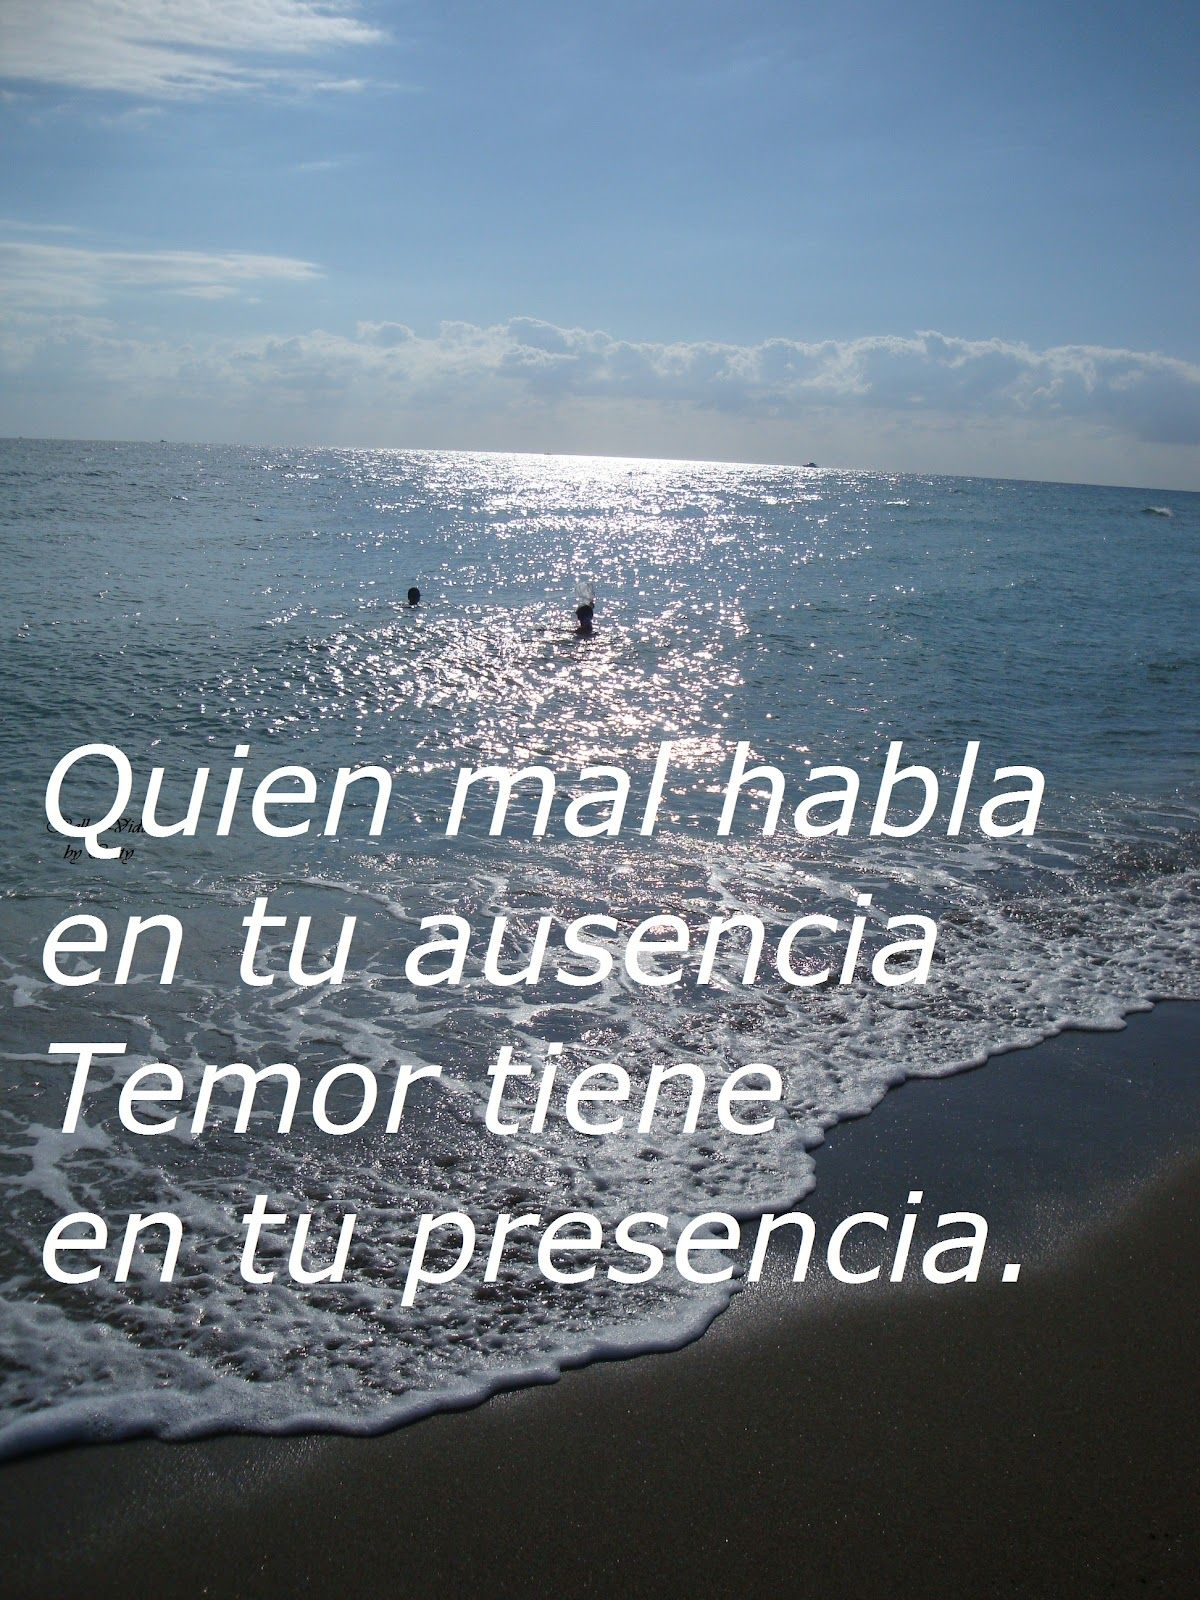 Spanish Quotes Sayings Cute Heart: Best 25+ Quotes En Espanol Ideas On Pinterest